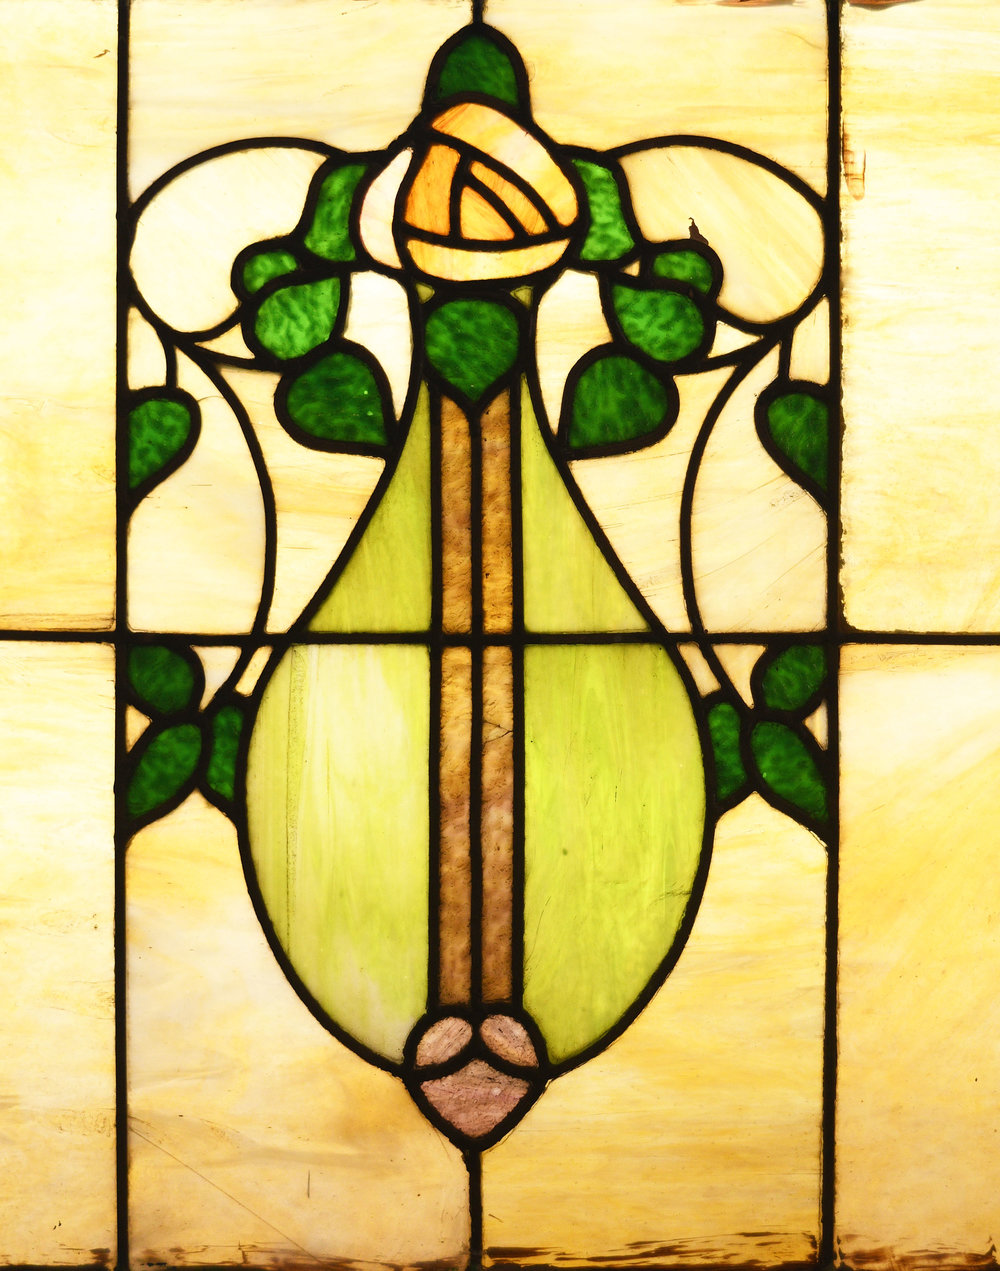 rose stained glass window pain detail full.jpg